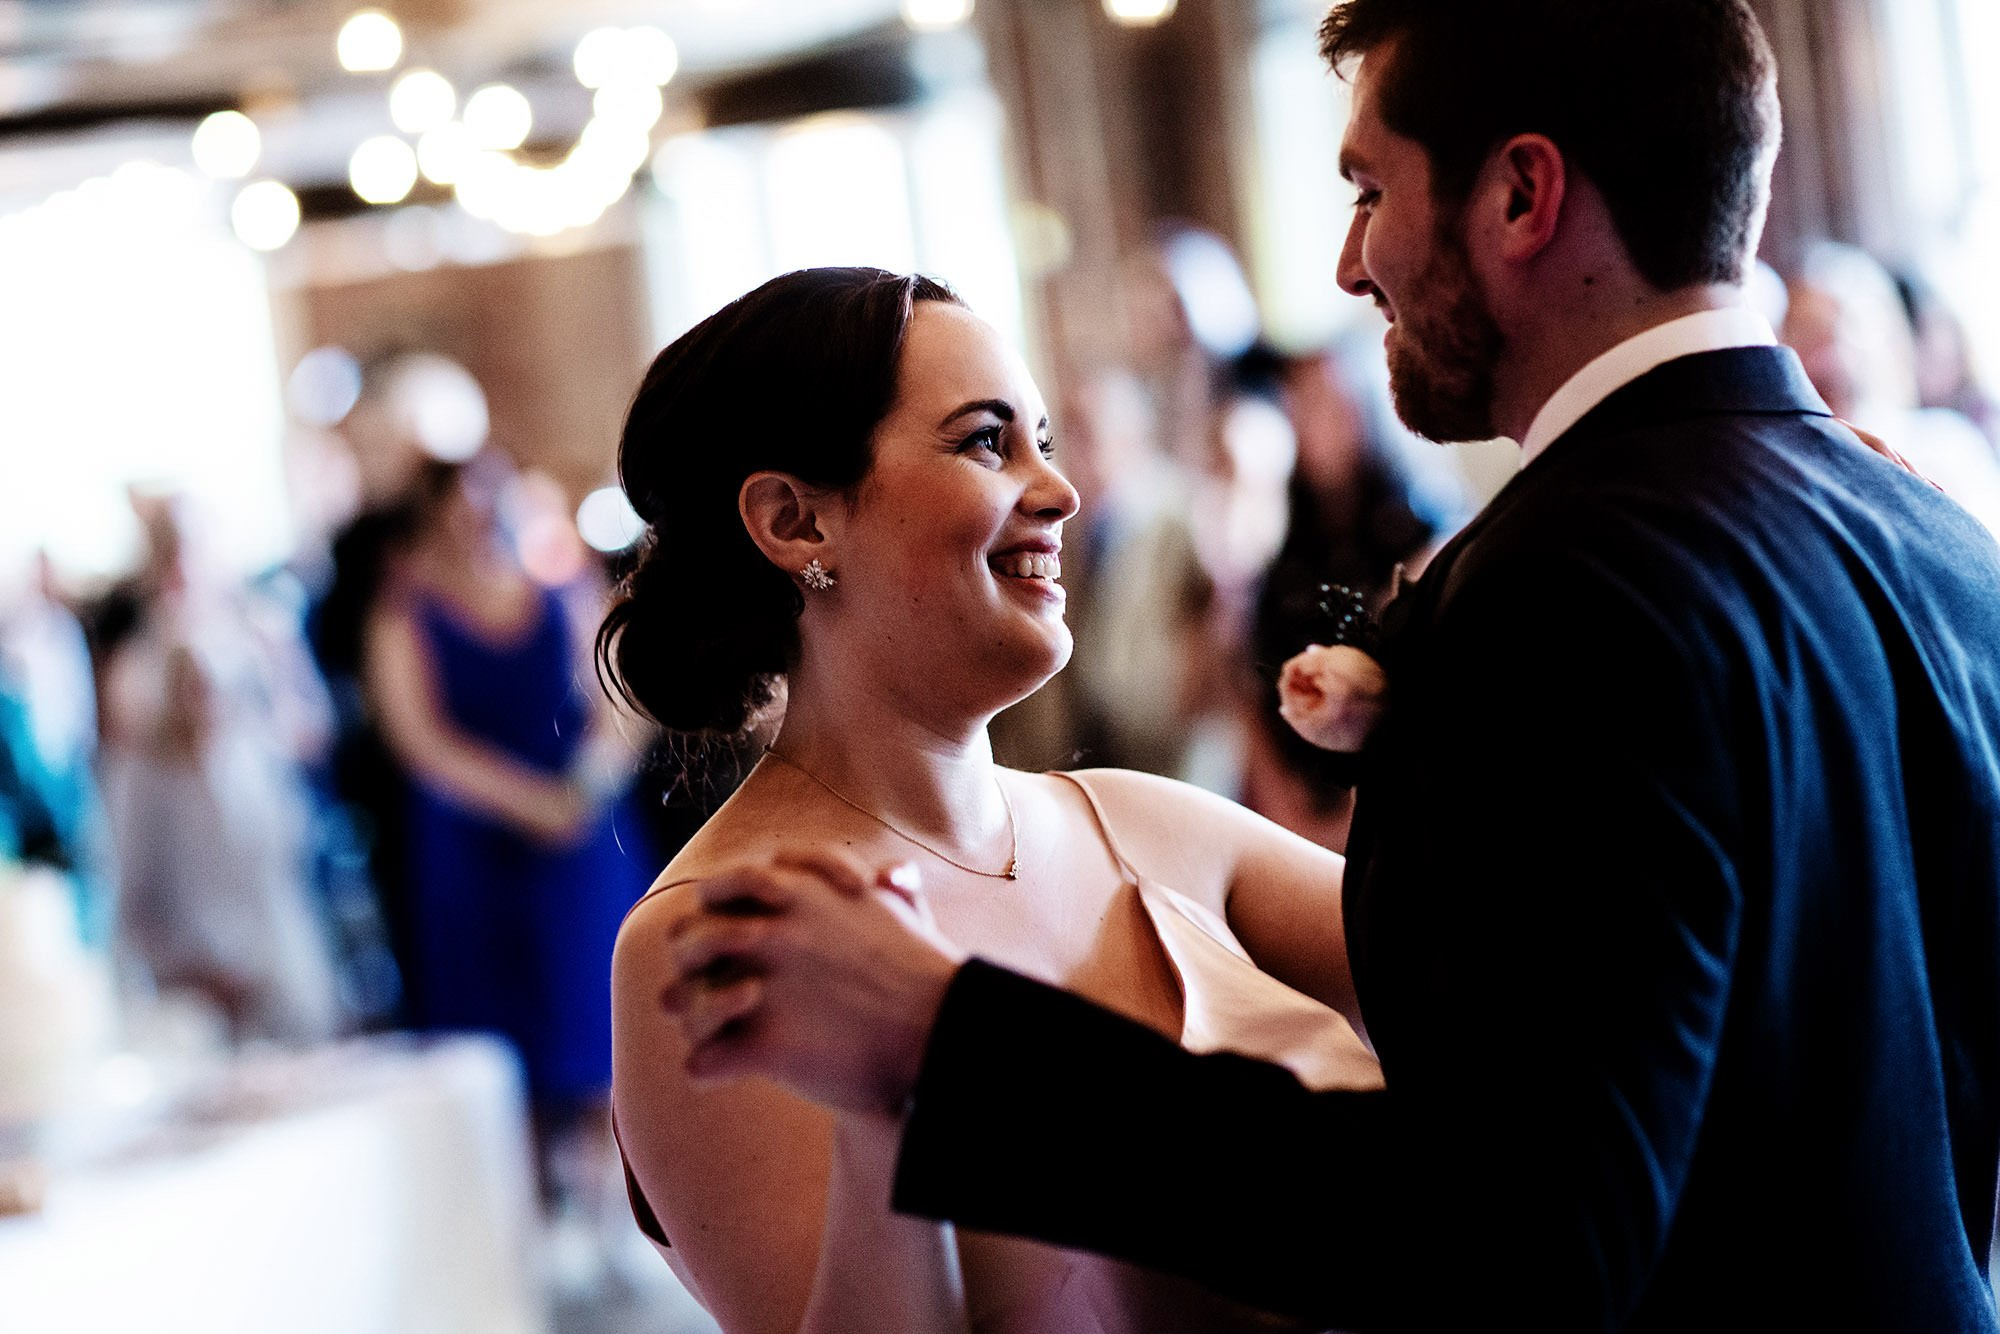 Loft at 600 F Wedding  I  The couple share their first dance during the wedding reception.